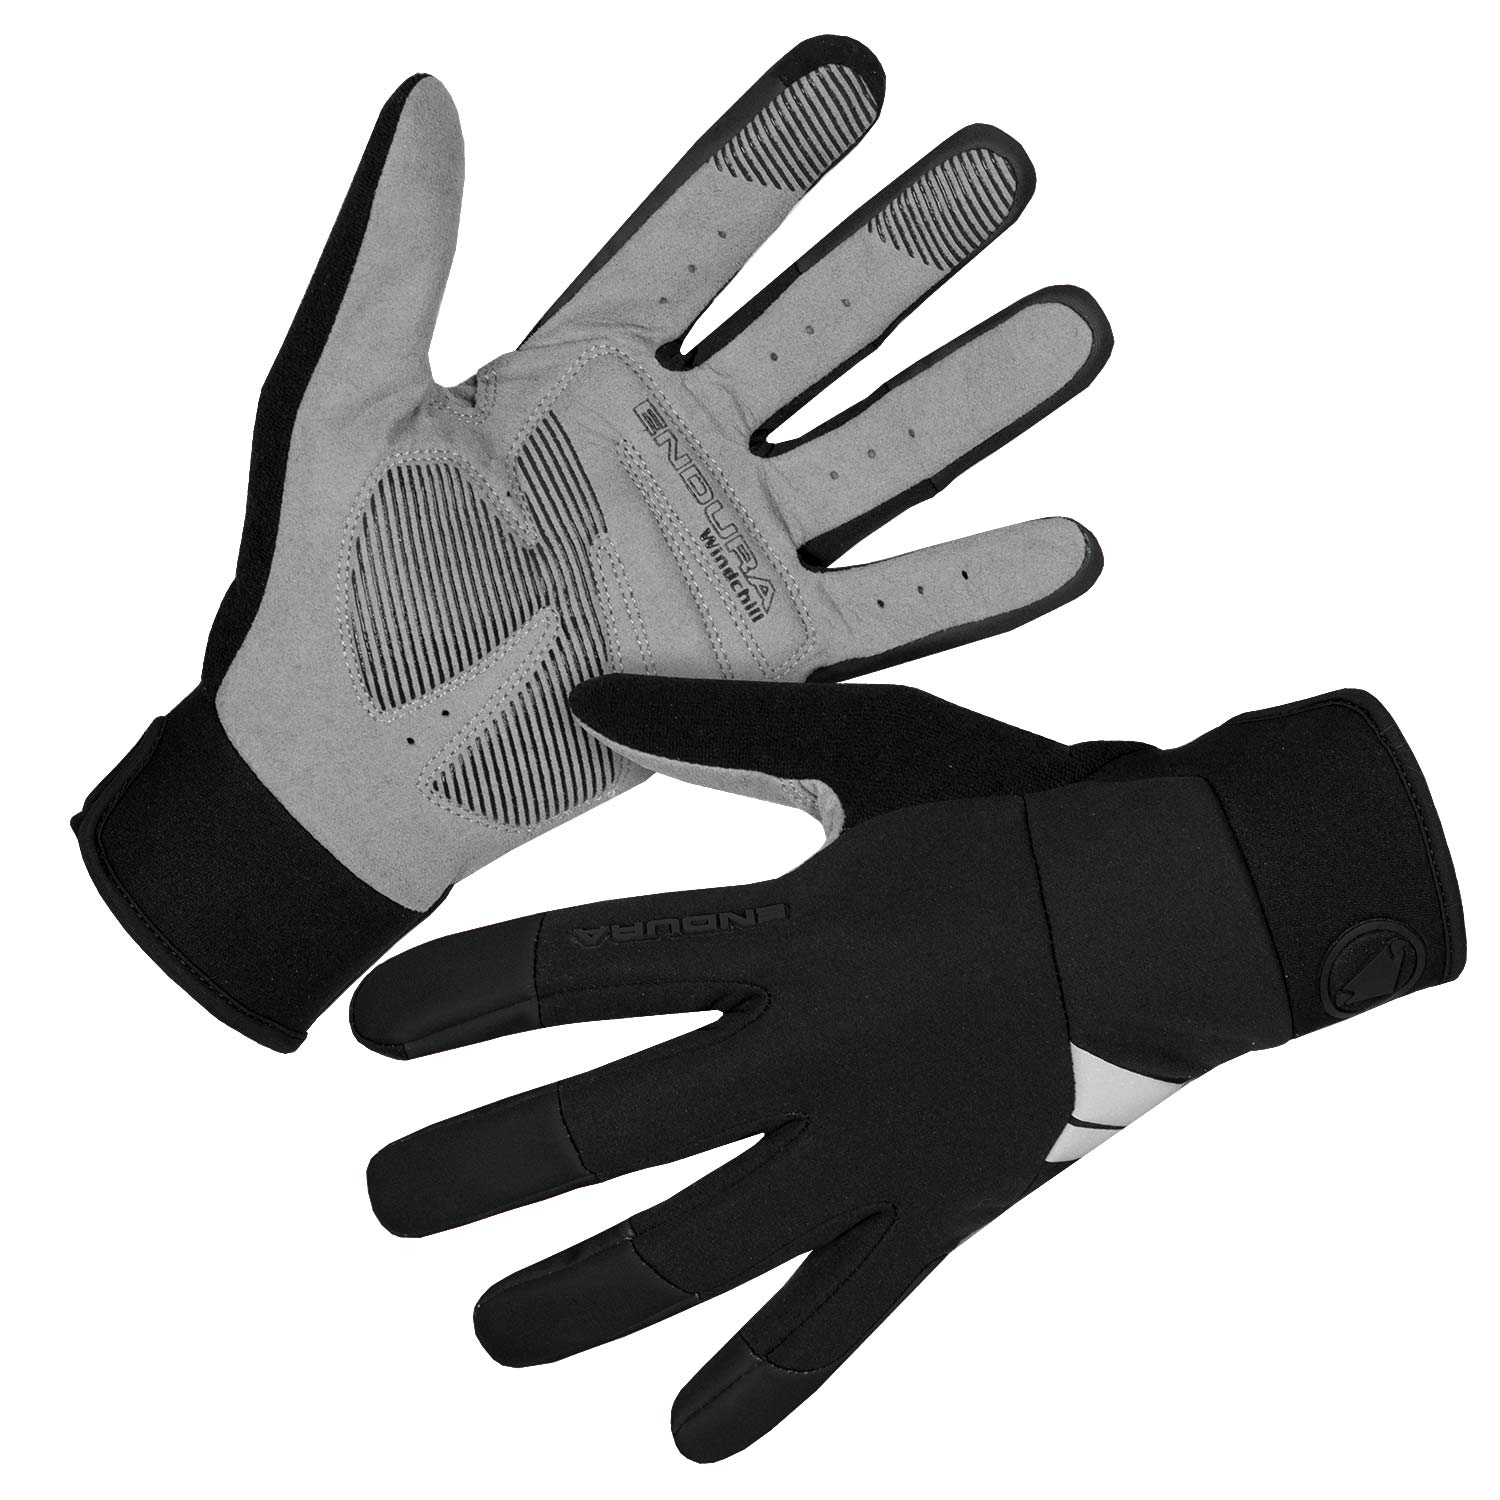 Endura Windchill (Medium) Windproof Cycling Gloves